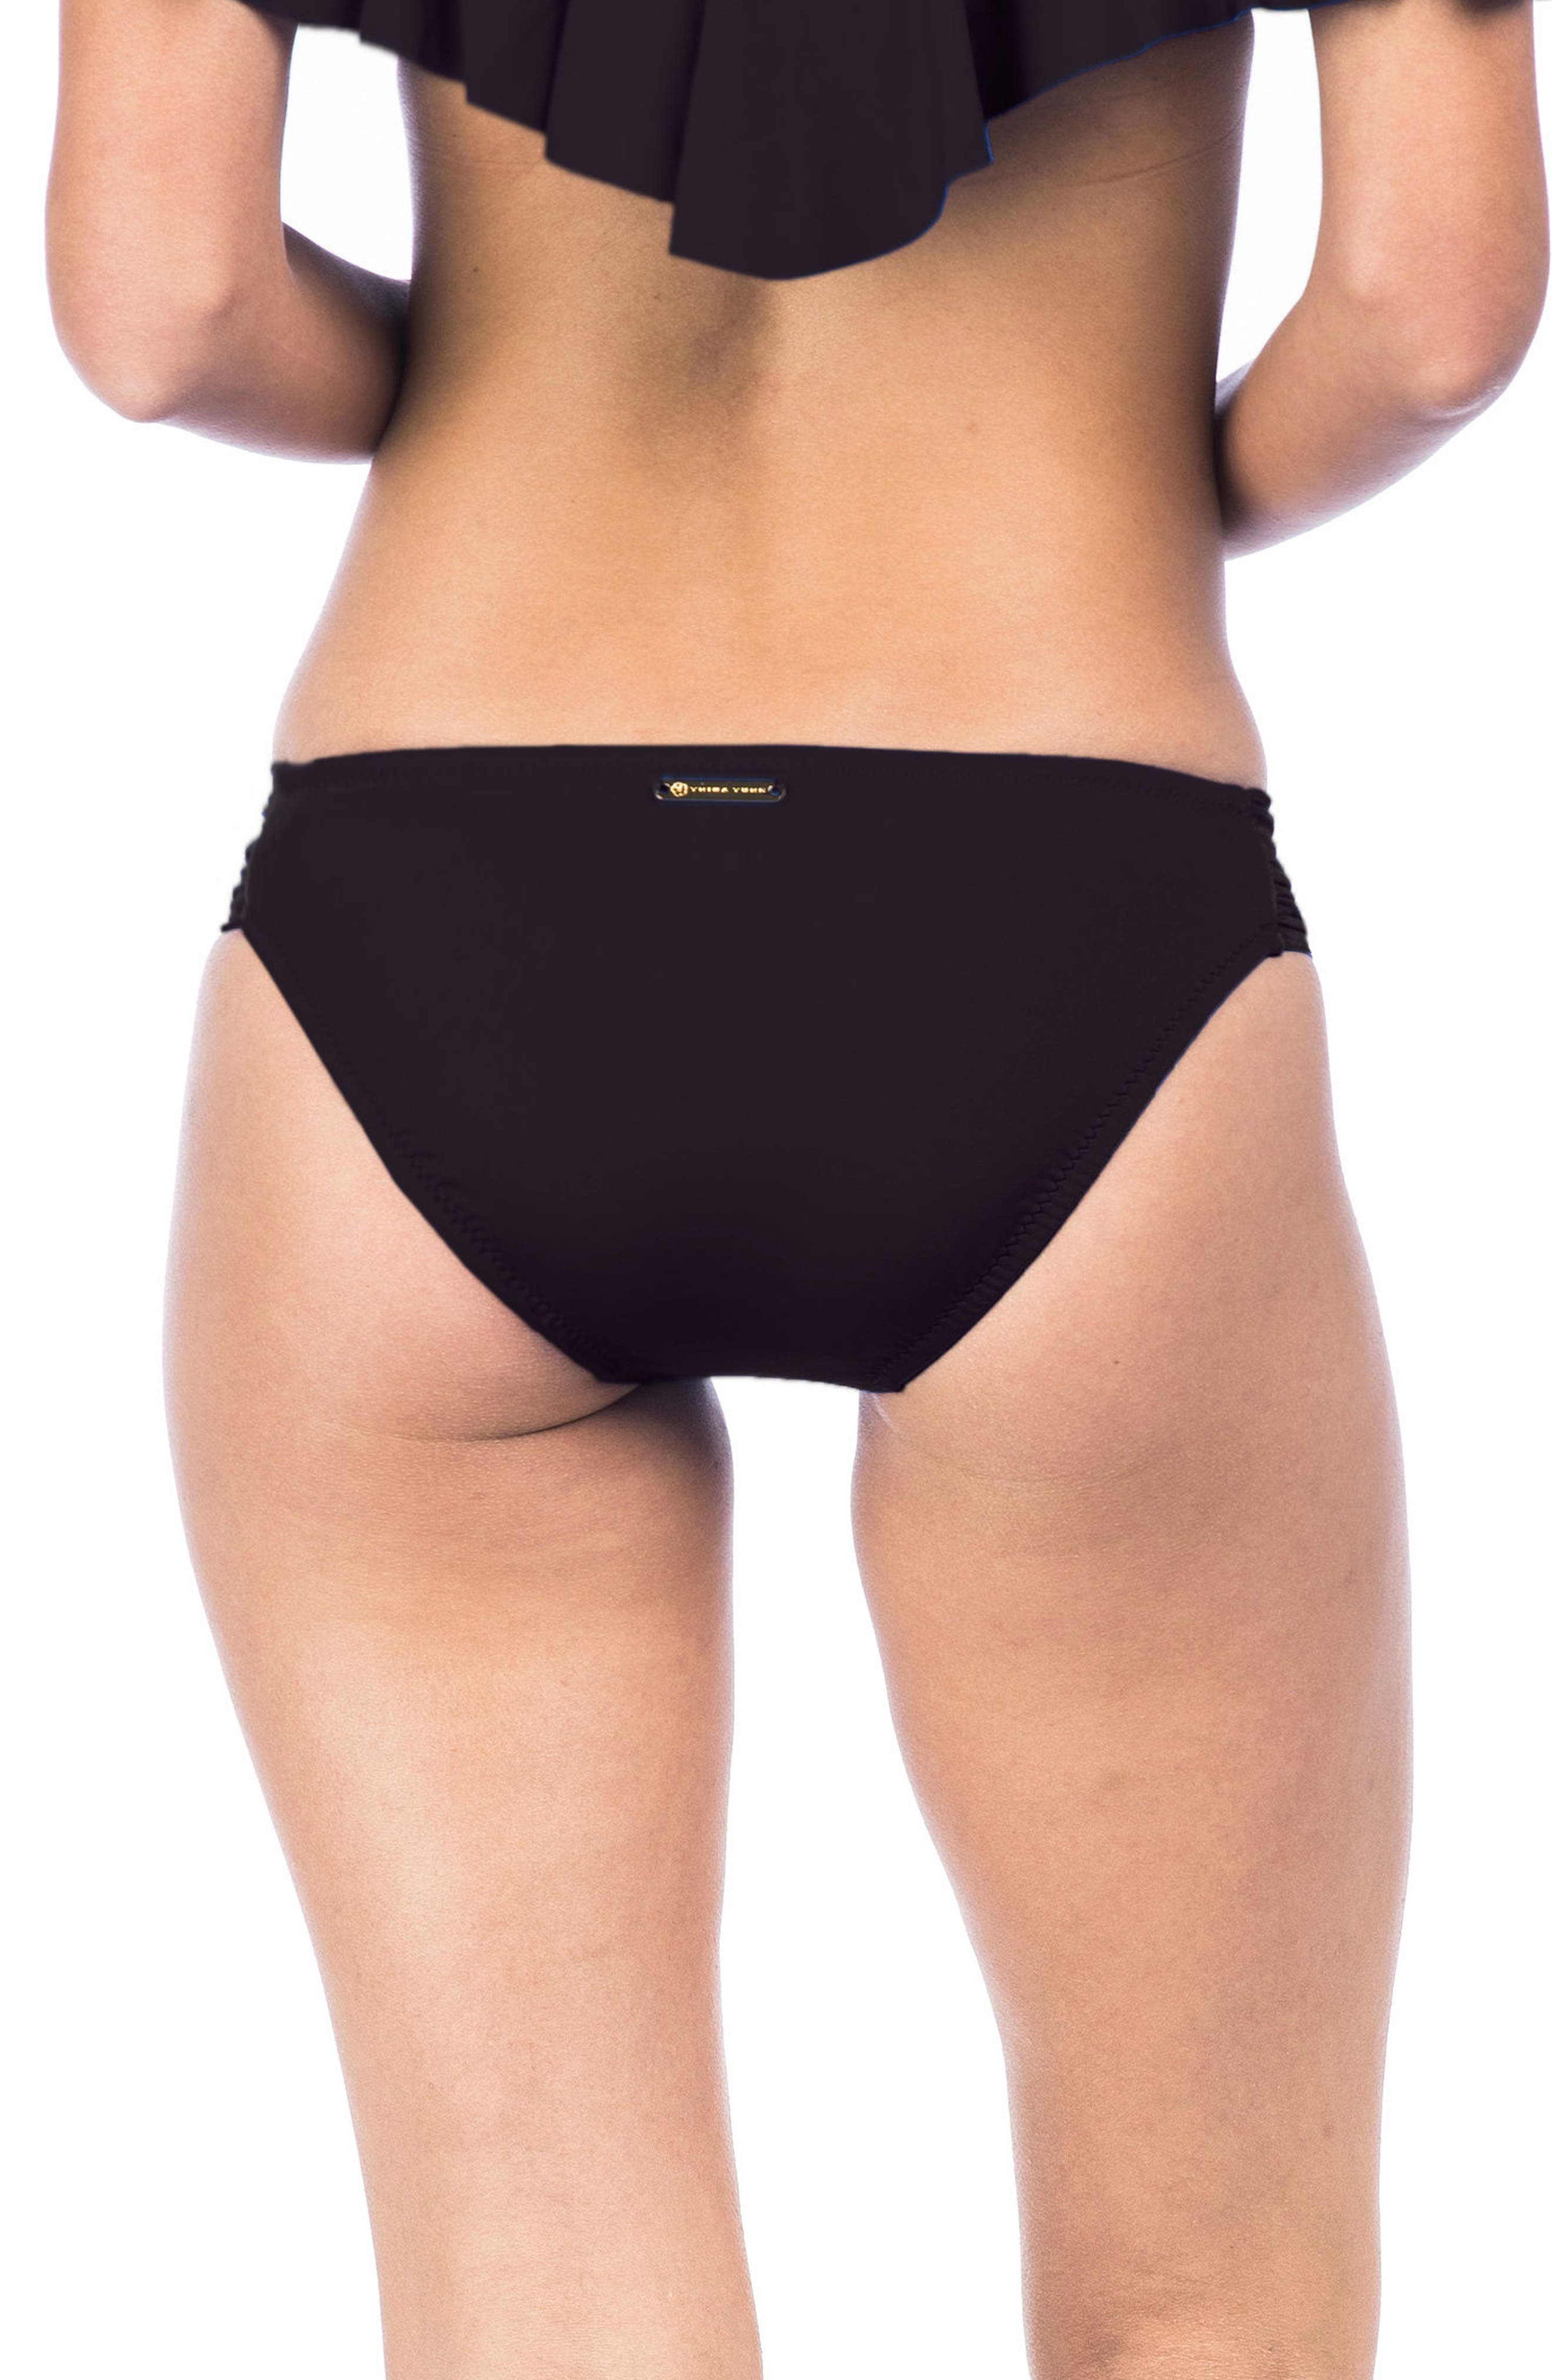 Studio Solids Bikini Bottoms,                             Alternate thumbnail 2, color,                             001